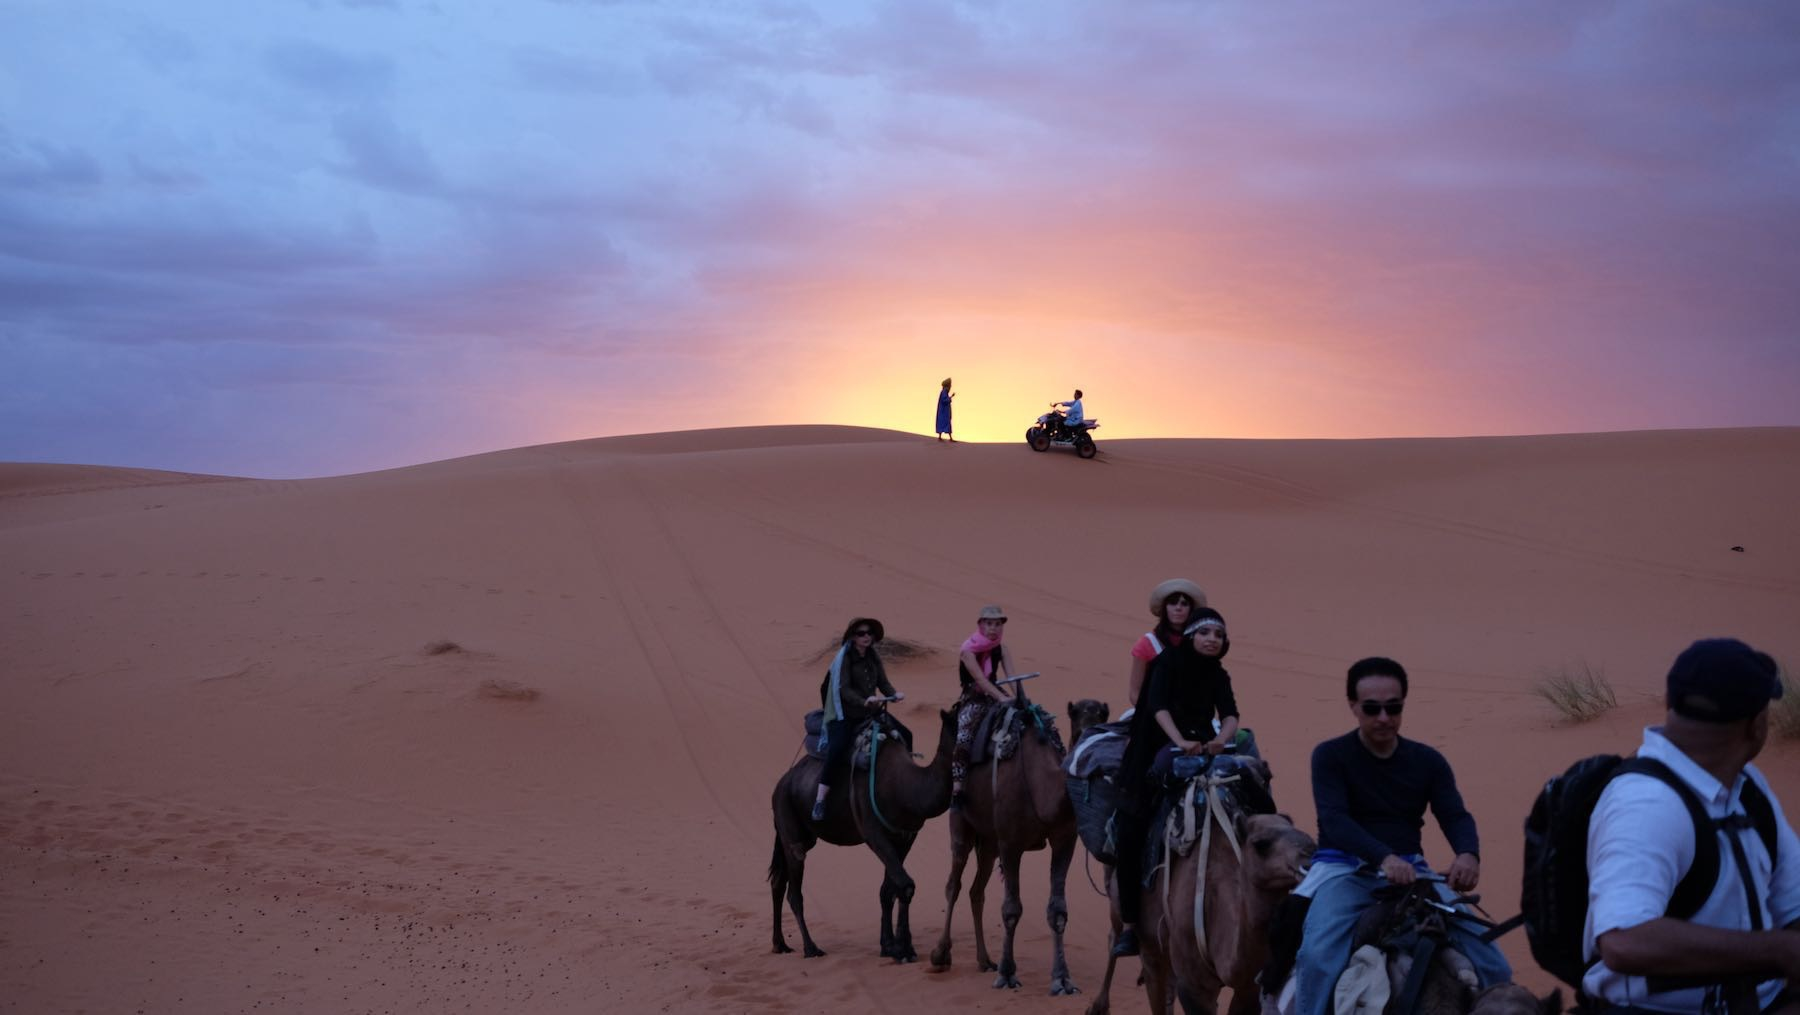 Sun rising over desert with locals silhouetted, rear end of camel train near the camera.